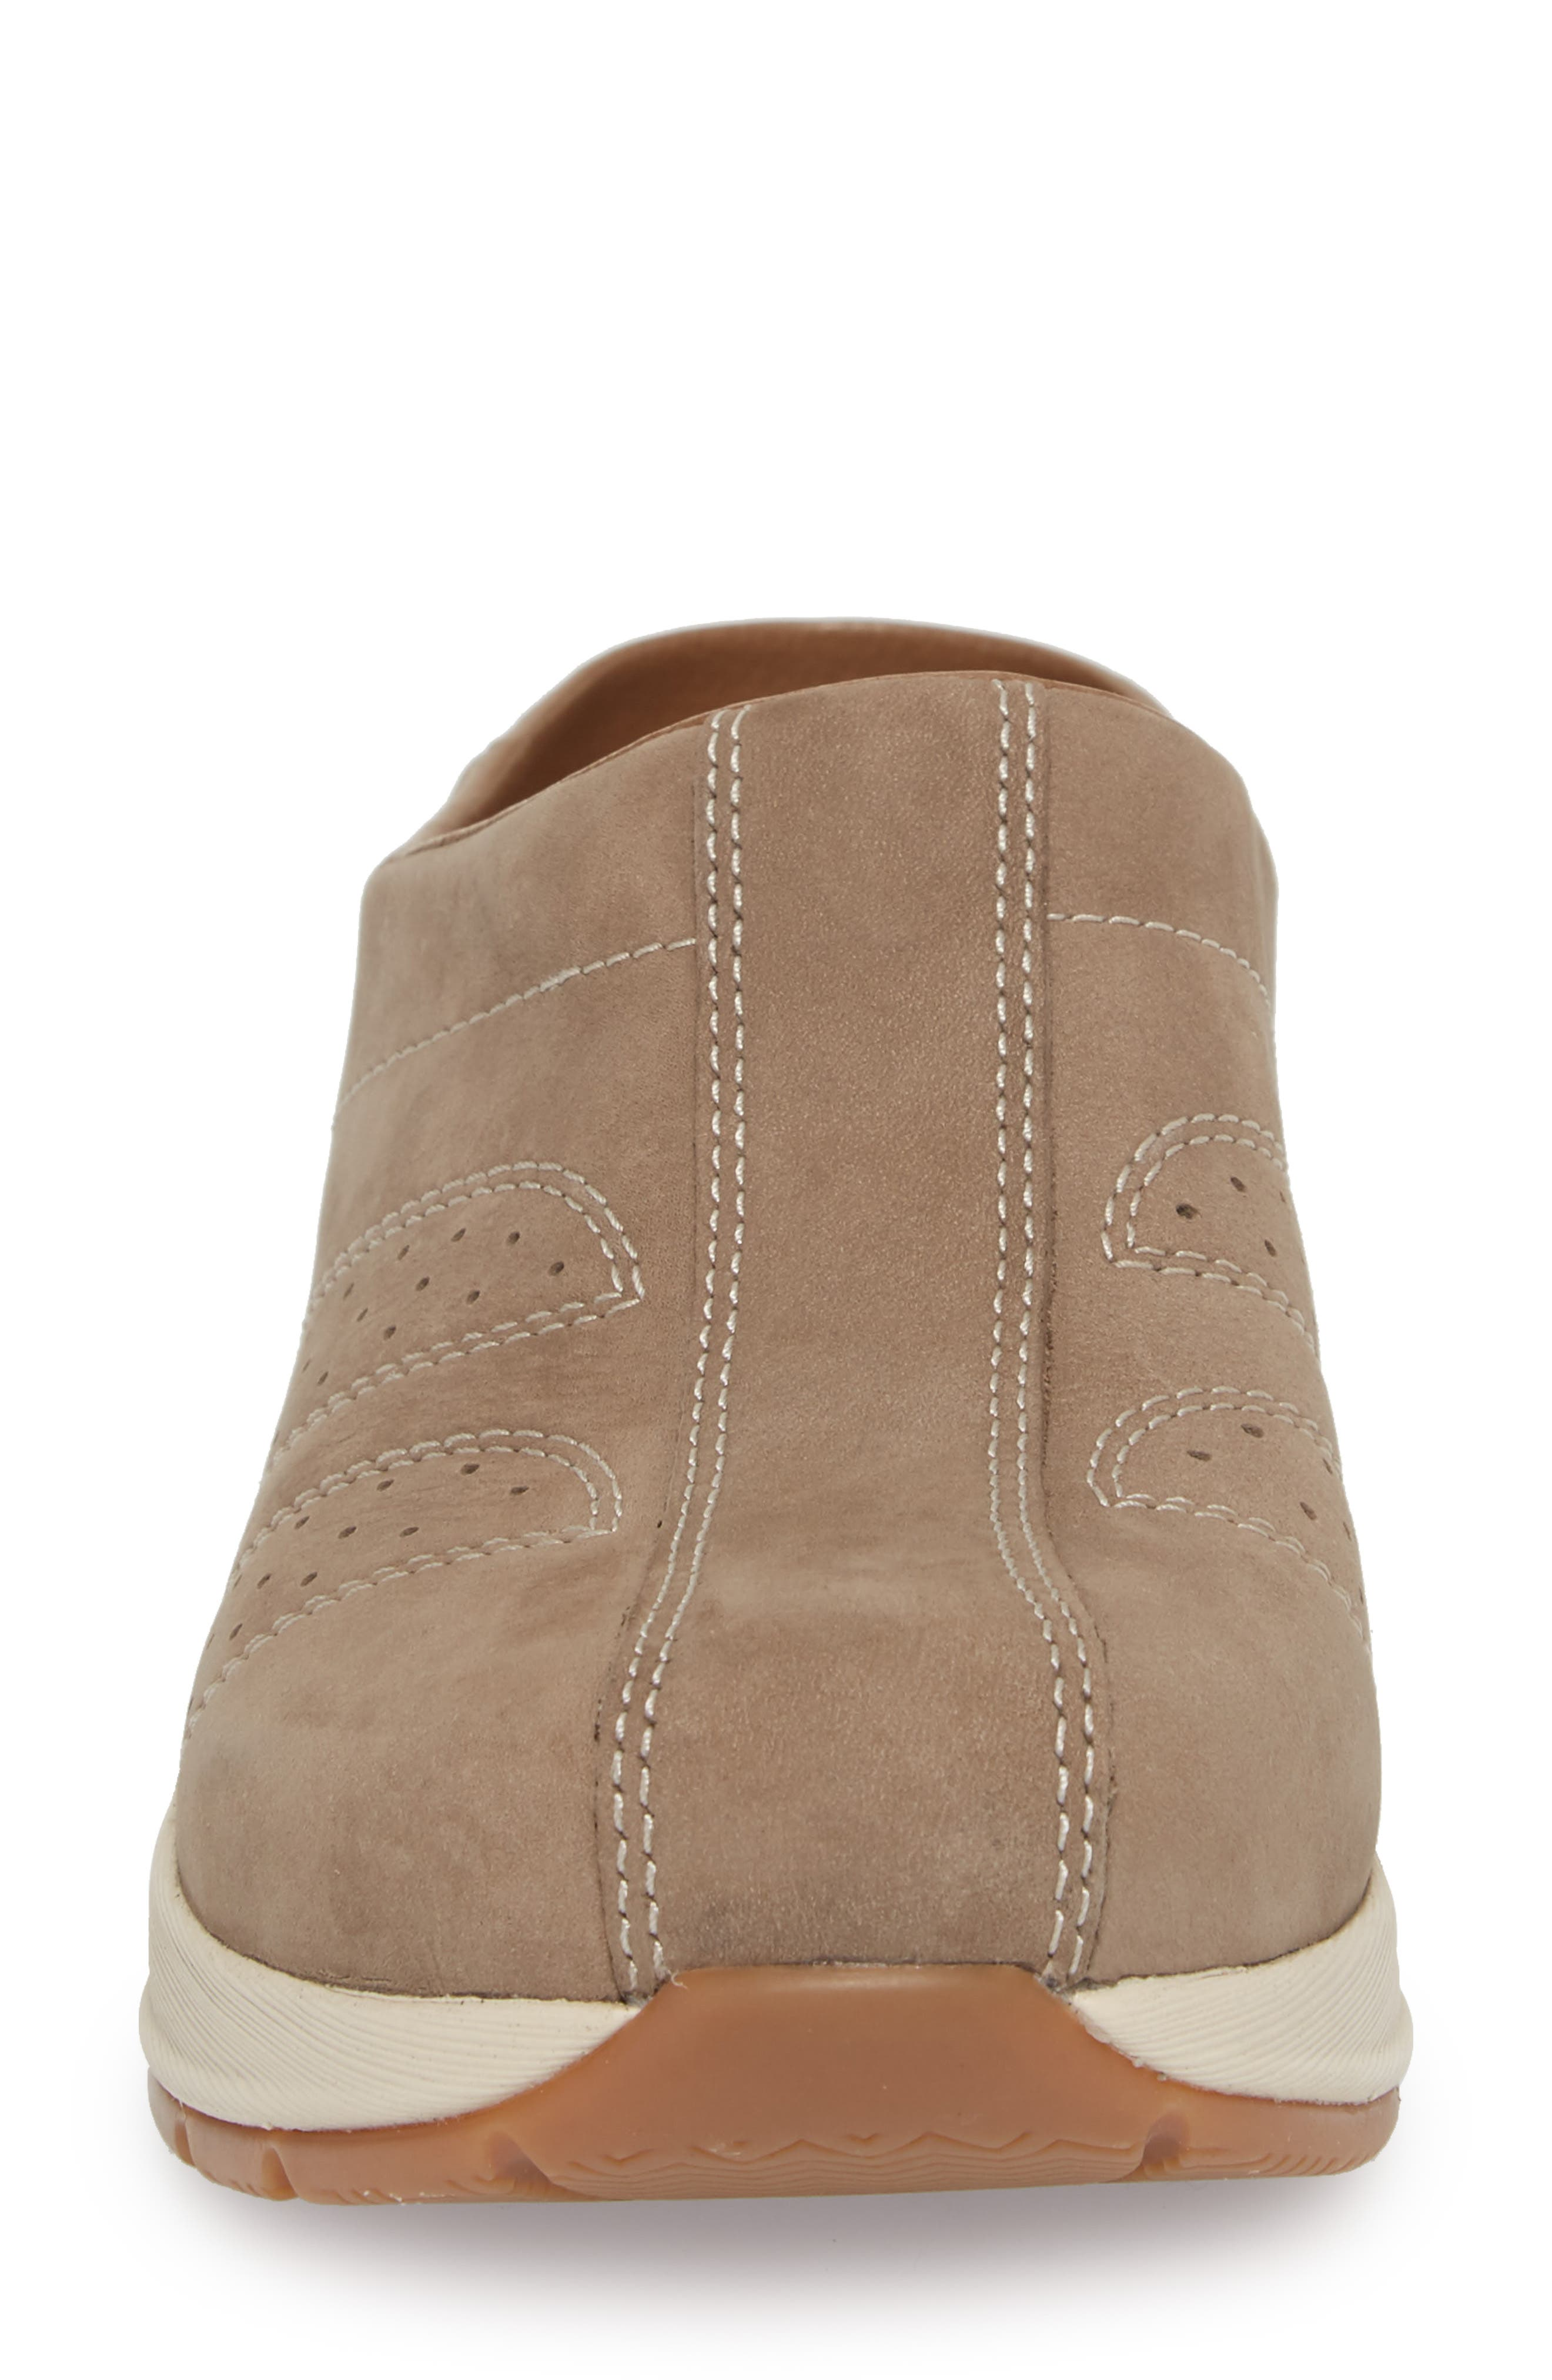 Dankso Shelly Mule,                             Alternate thumbnail 4, color,                             TAUPE MILLED NUBUCK LEATHER